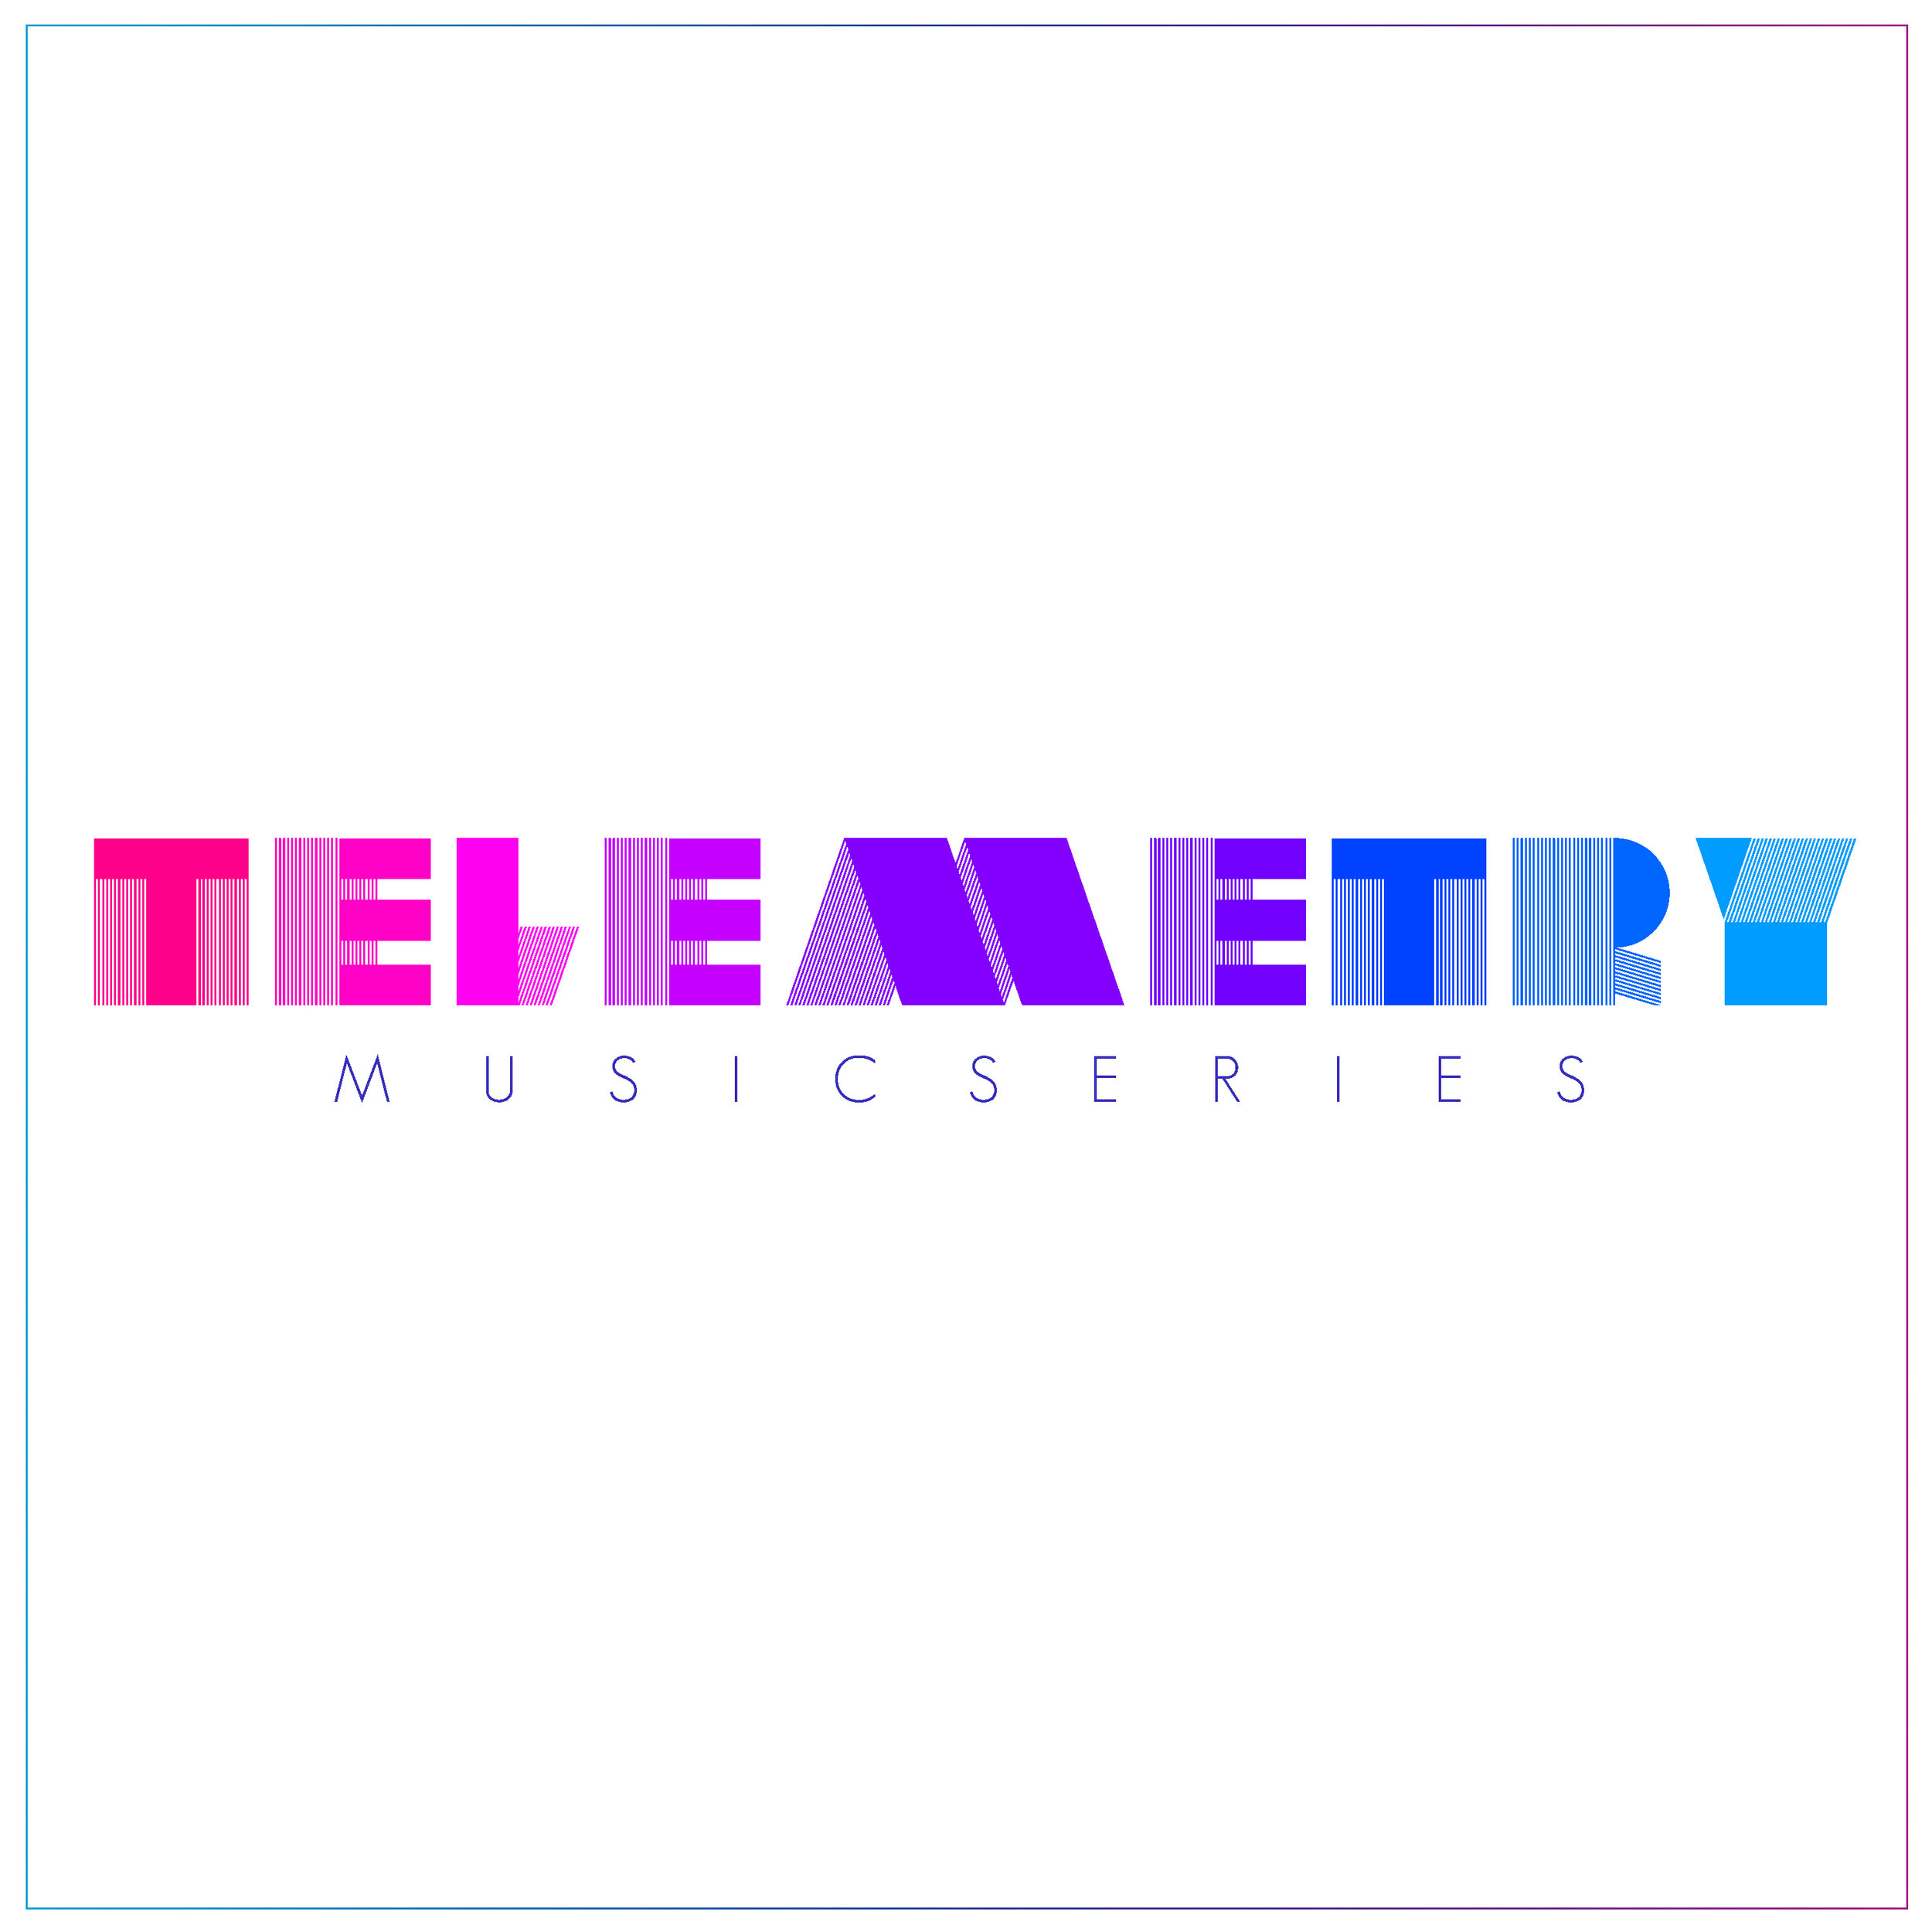 TELEMETRY - Last Sat monthly at 9pmAn unconventional music series showcasing bold new musical compositions, new instrumentation, and unique collaborations across space and genre. Recorded live at The Bridge Progressive Arts Initiative, in partnership with UVA Arts and The UVA Music Department in Charlottesville Virginia. Learn more here.